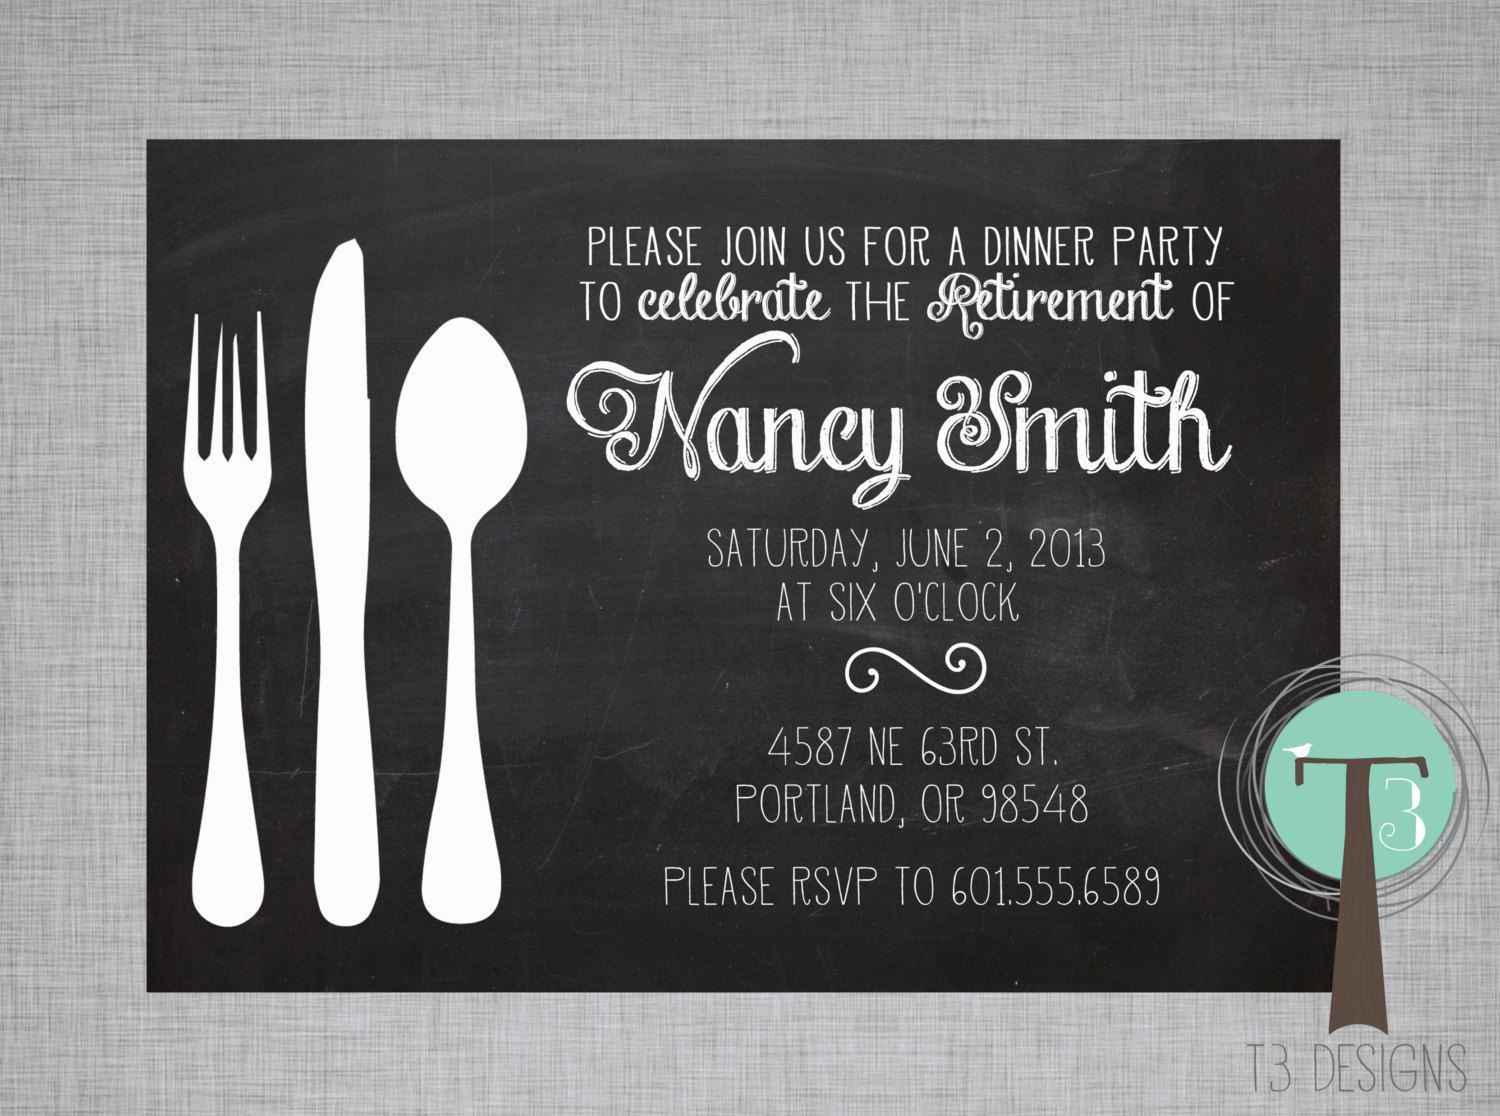 Dinner Invitation Template Extraordinary Dinner Invitation Template  Dinner Invitation Template Text .